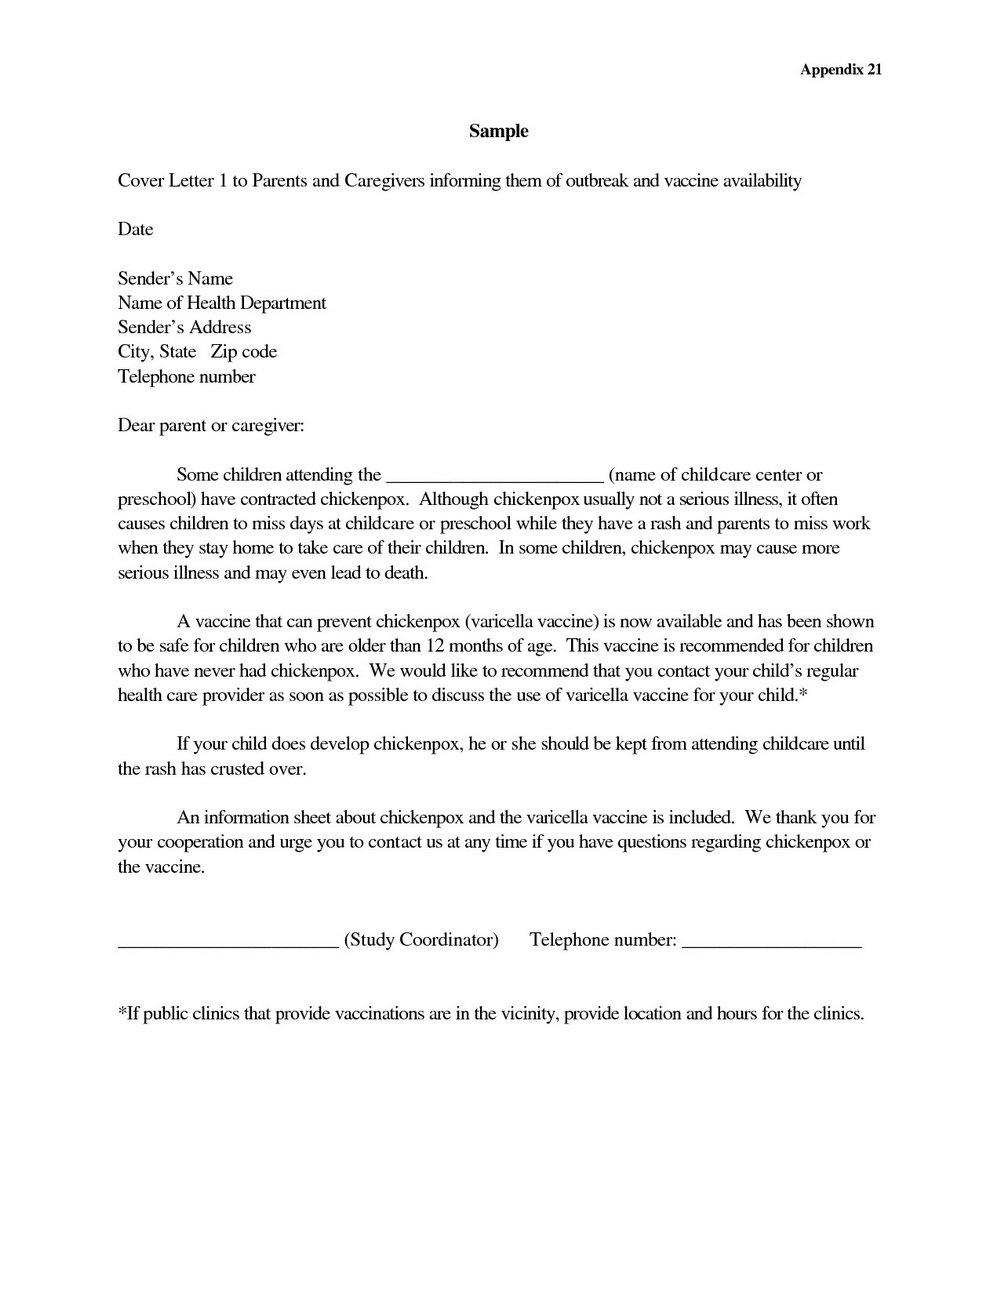 Sample Cover Letter For Caregiver